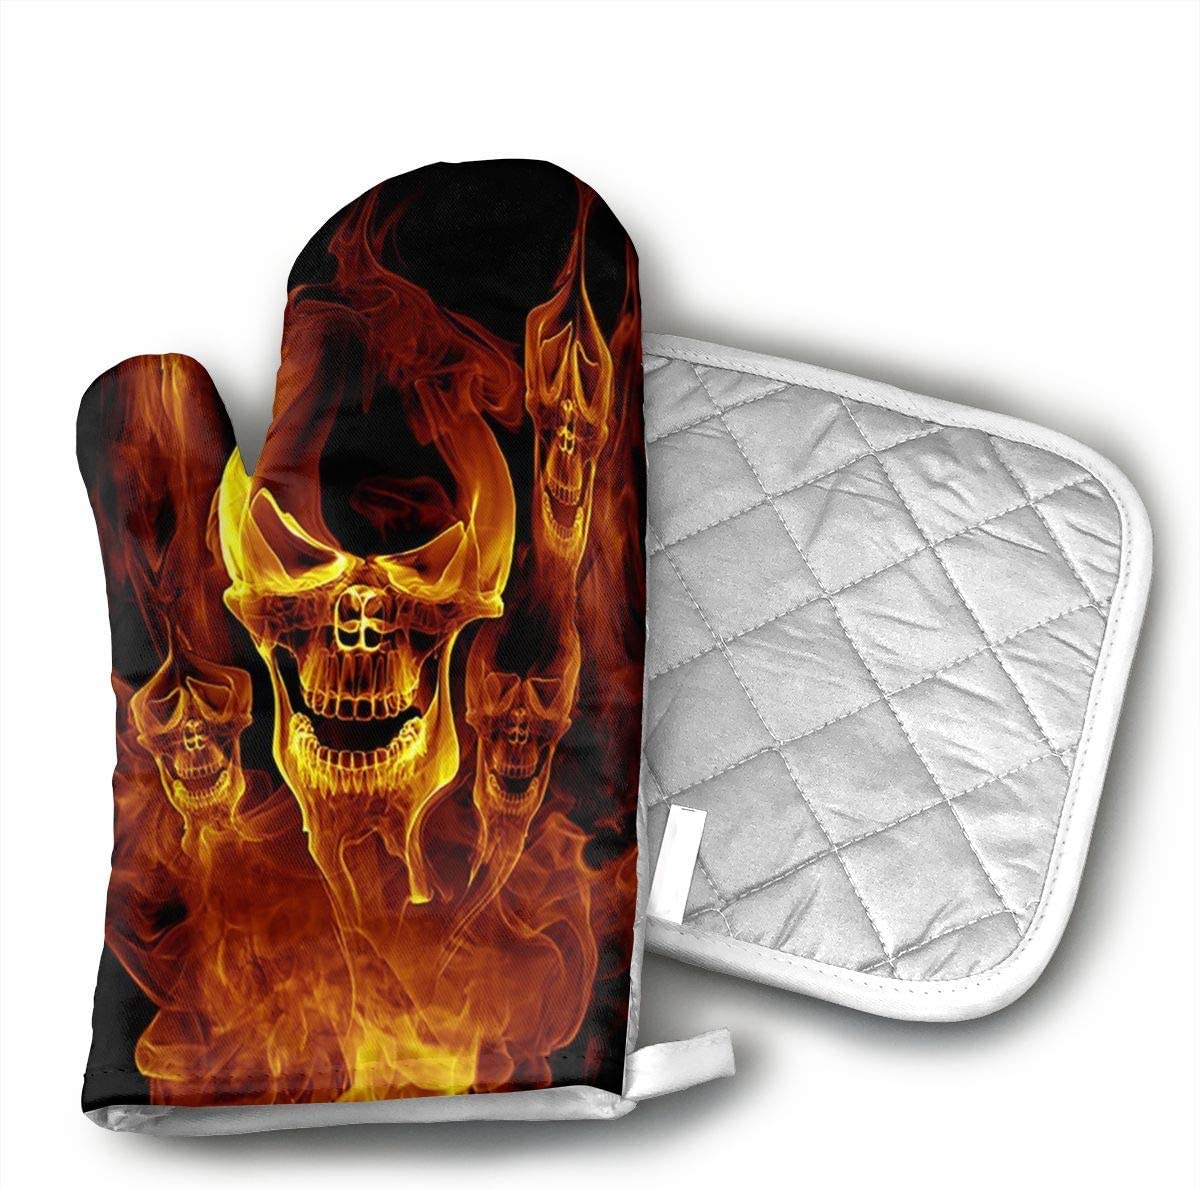 JFNNRUOP Red Burnning Flame Skeleton Skull Head Oven Mitts,with Potholders Oven Gloves,Insulated Quilted Cotton Potholders